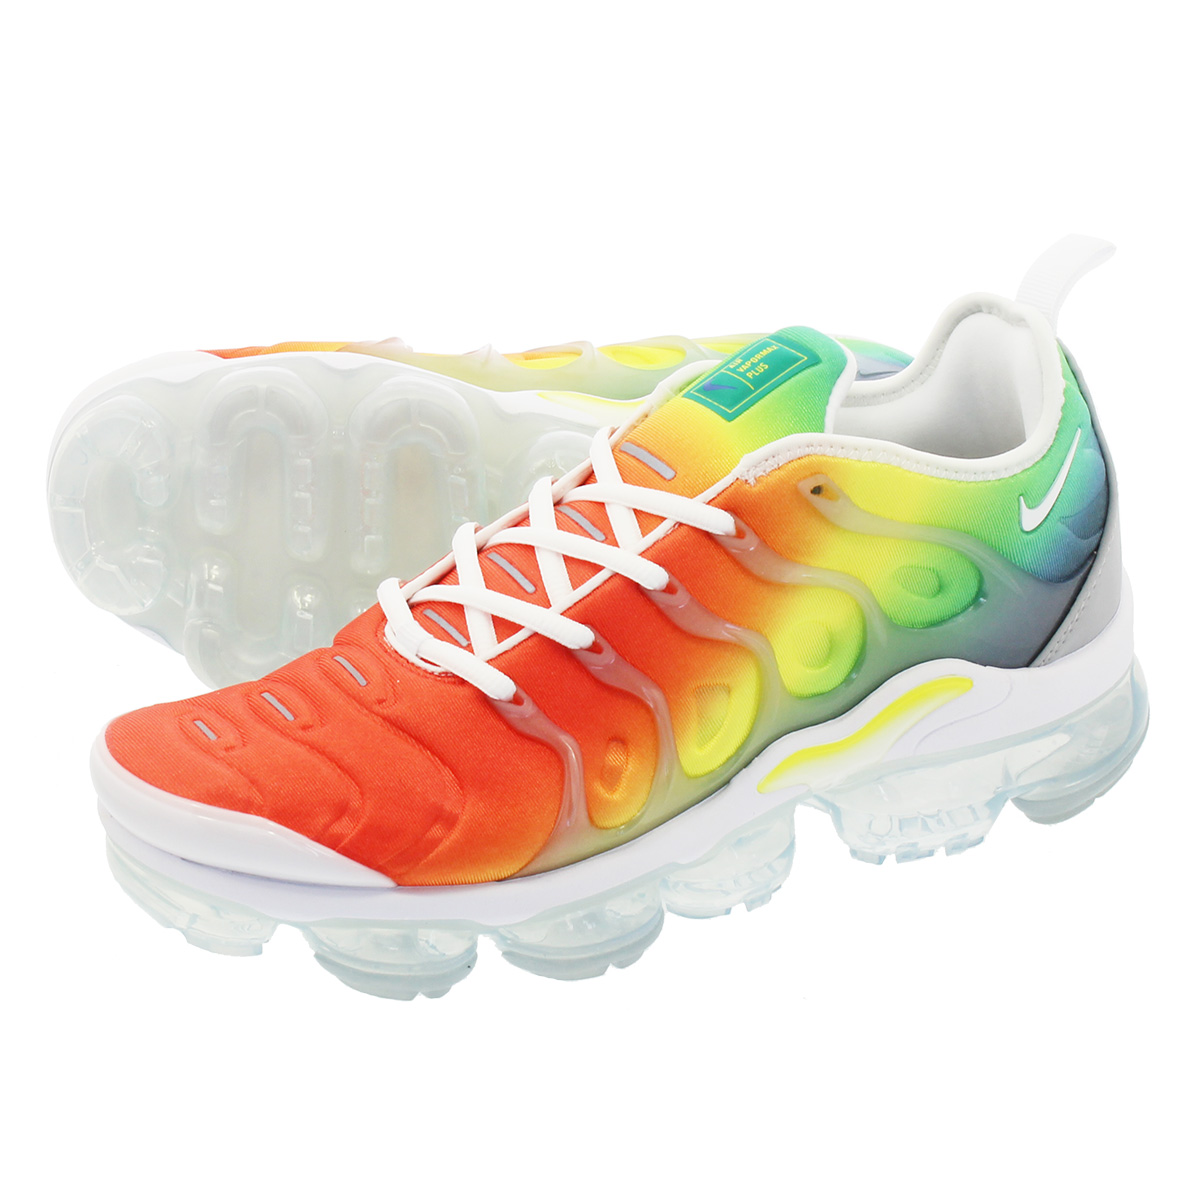 3e06ab581b049 NIKE AIR VAPORMAX PLUS Nike vapor max plus WHITE NEPTUNE GREEN DYNAMIC  YELLOW 924